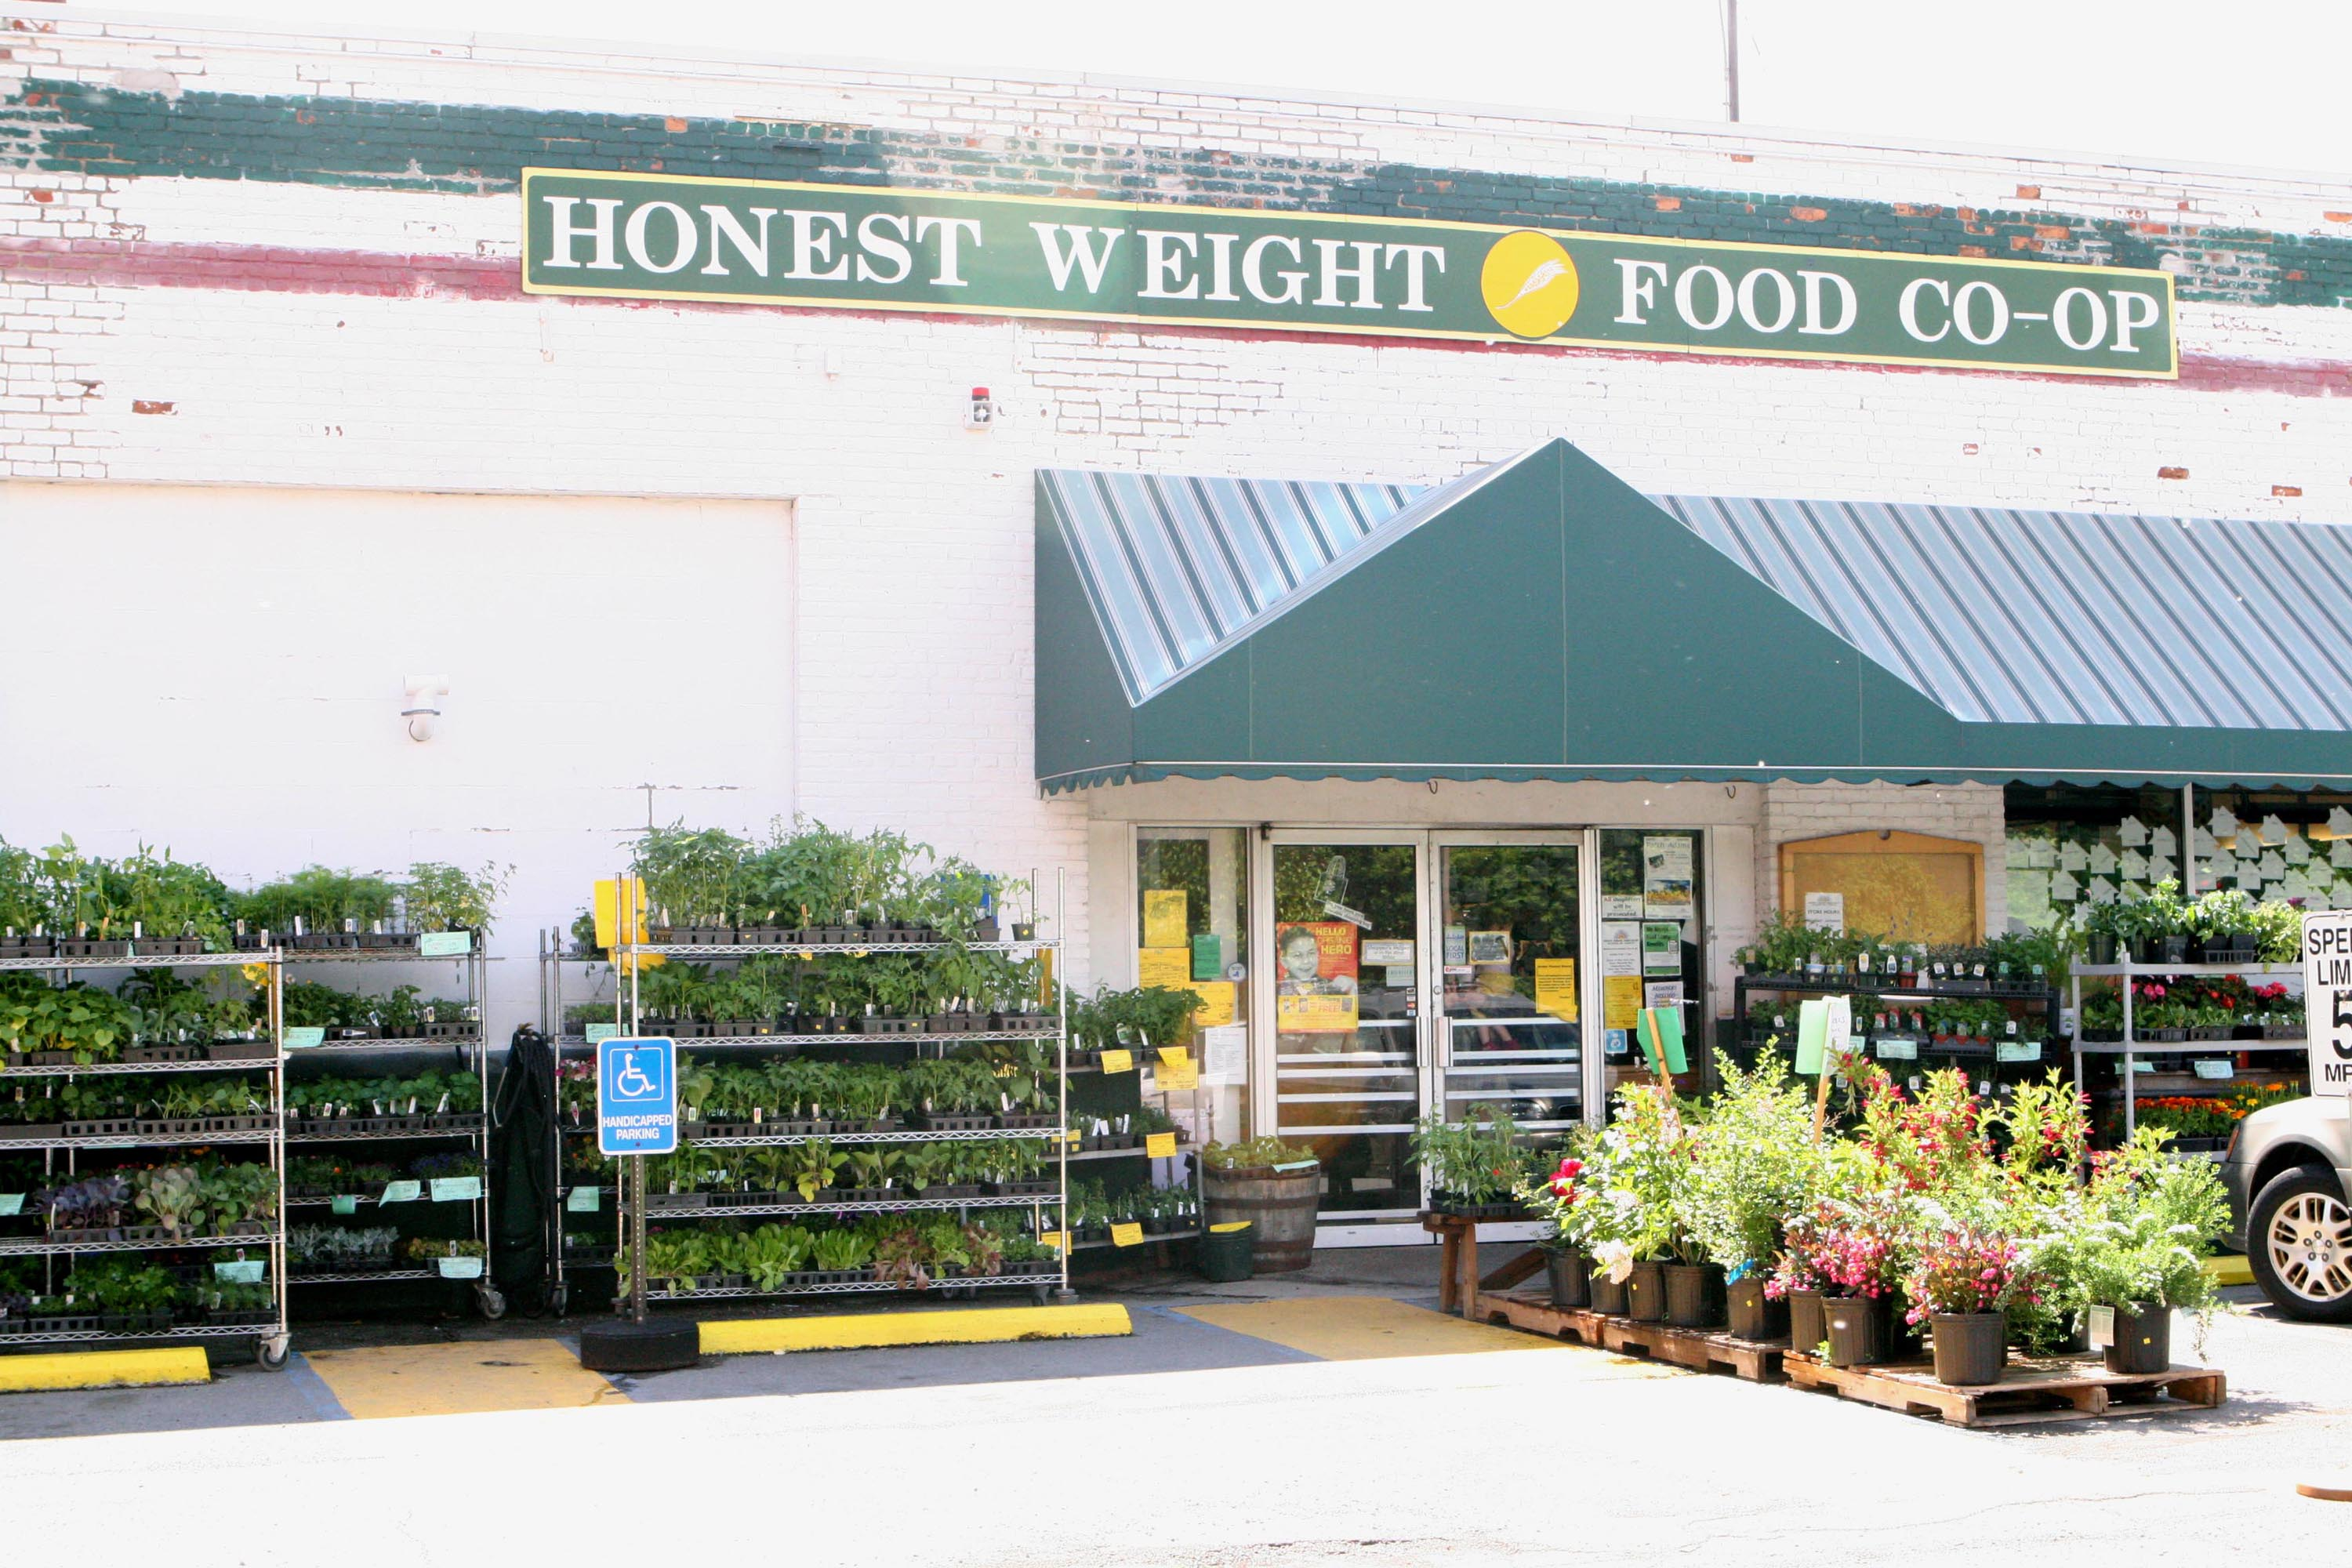 Honest Weight's second location's storefront on Central Ave in Albany, NY